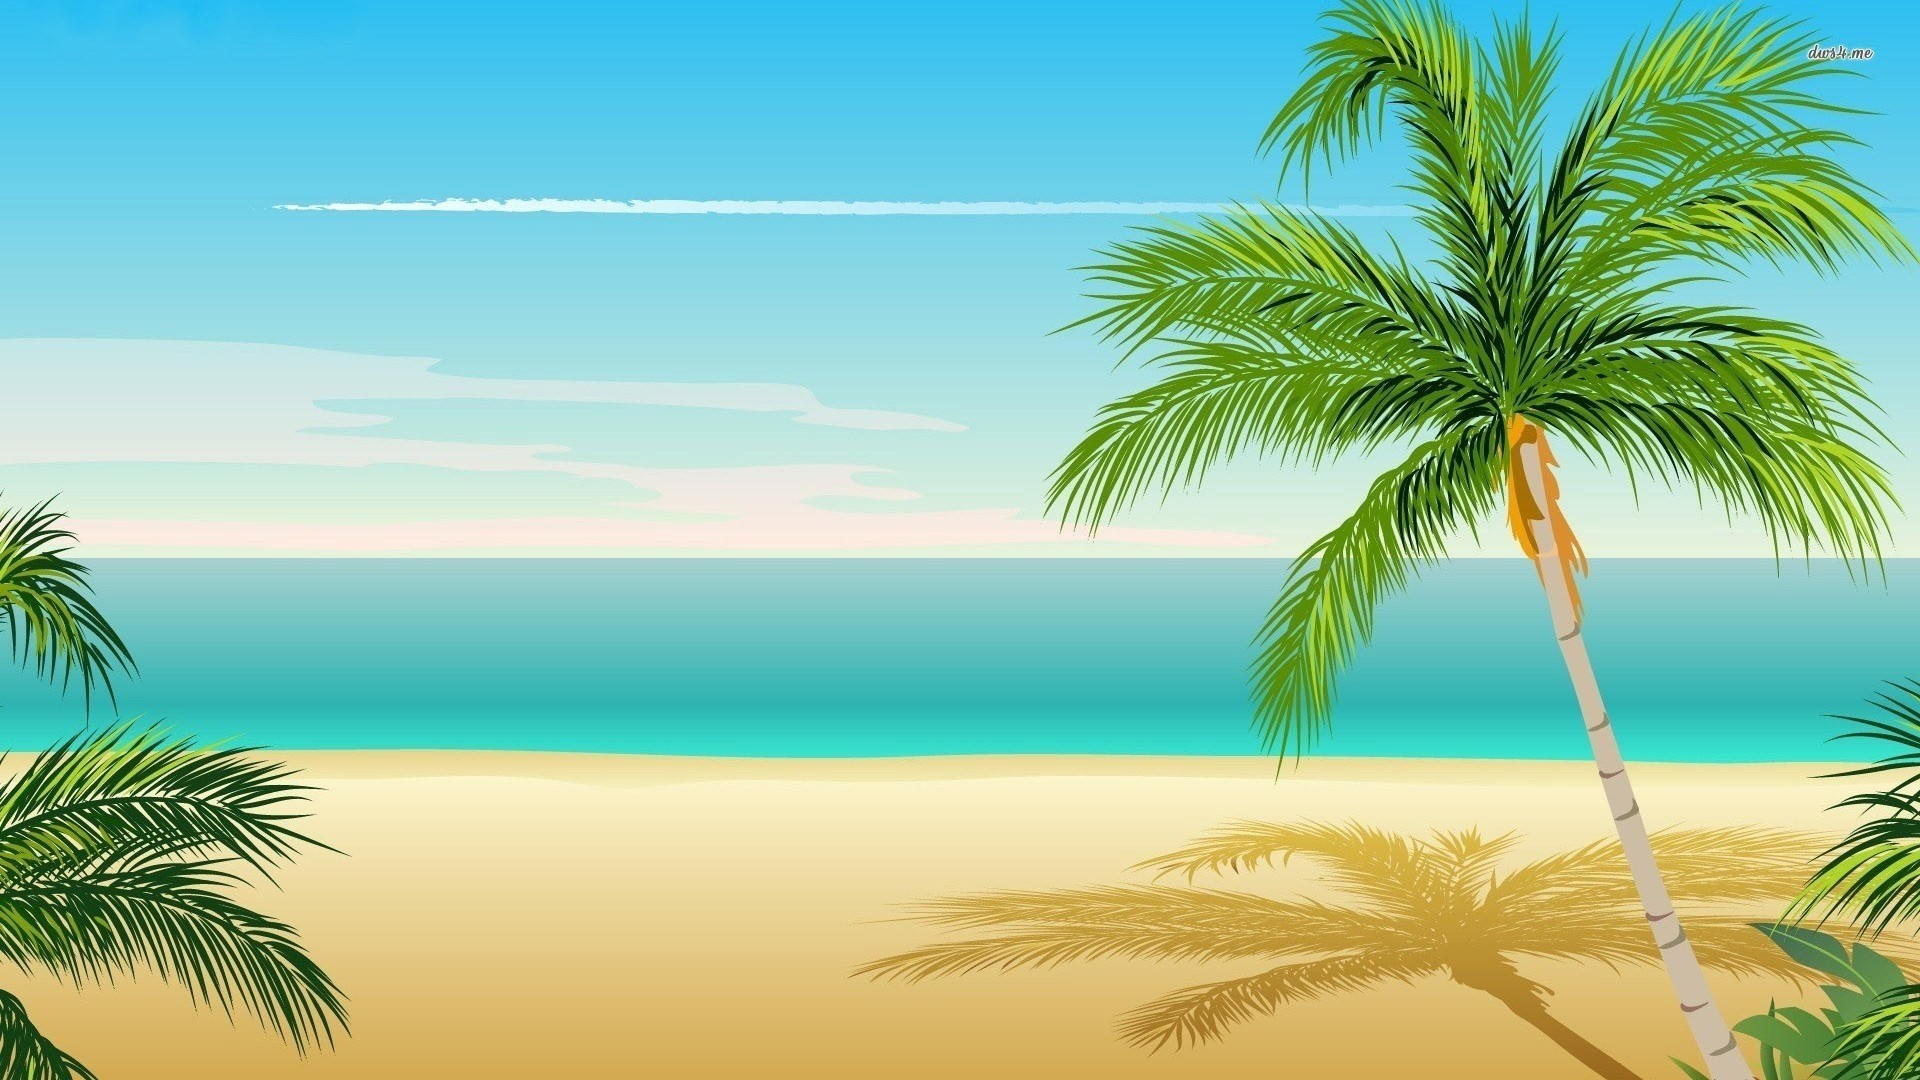 Ipad Wallpaper Beach Scenes: Palm Tree Beach Wallpapers (72+ Background Pictures